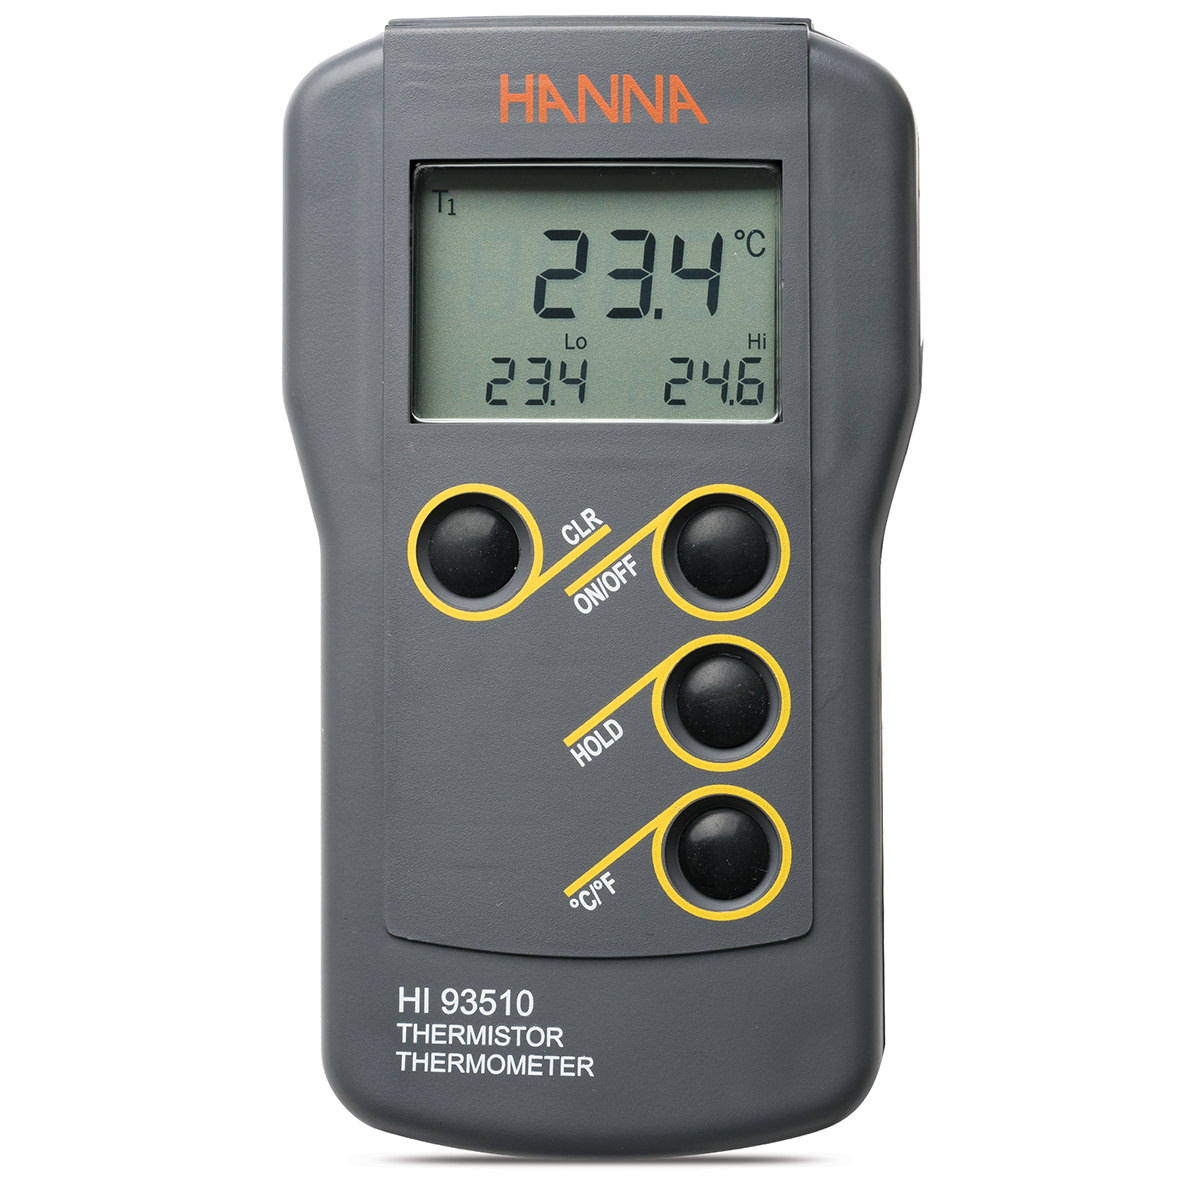 Waterproof Thermistor Thermometer - HI93510